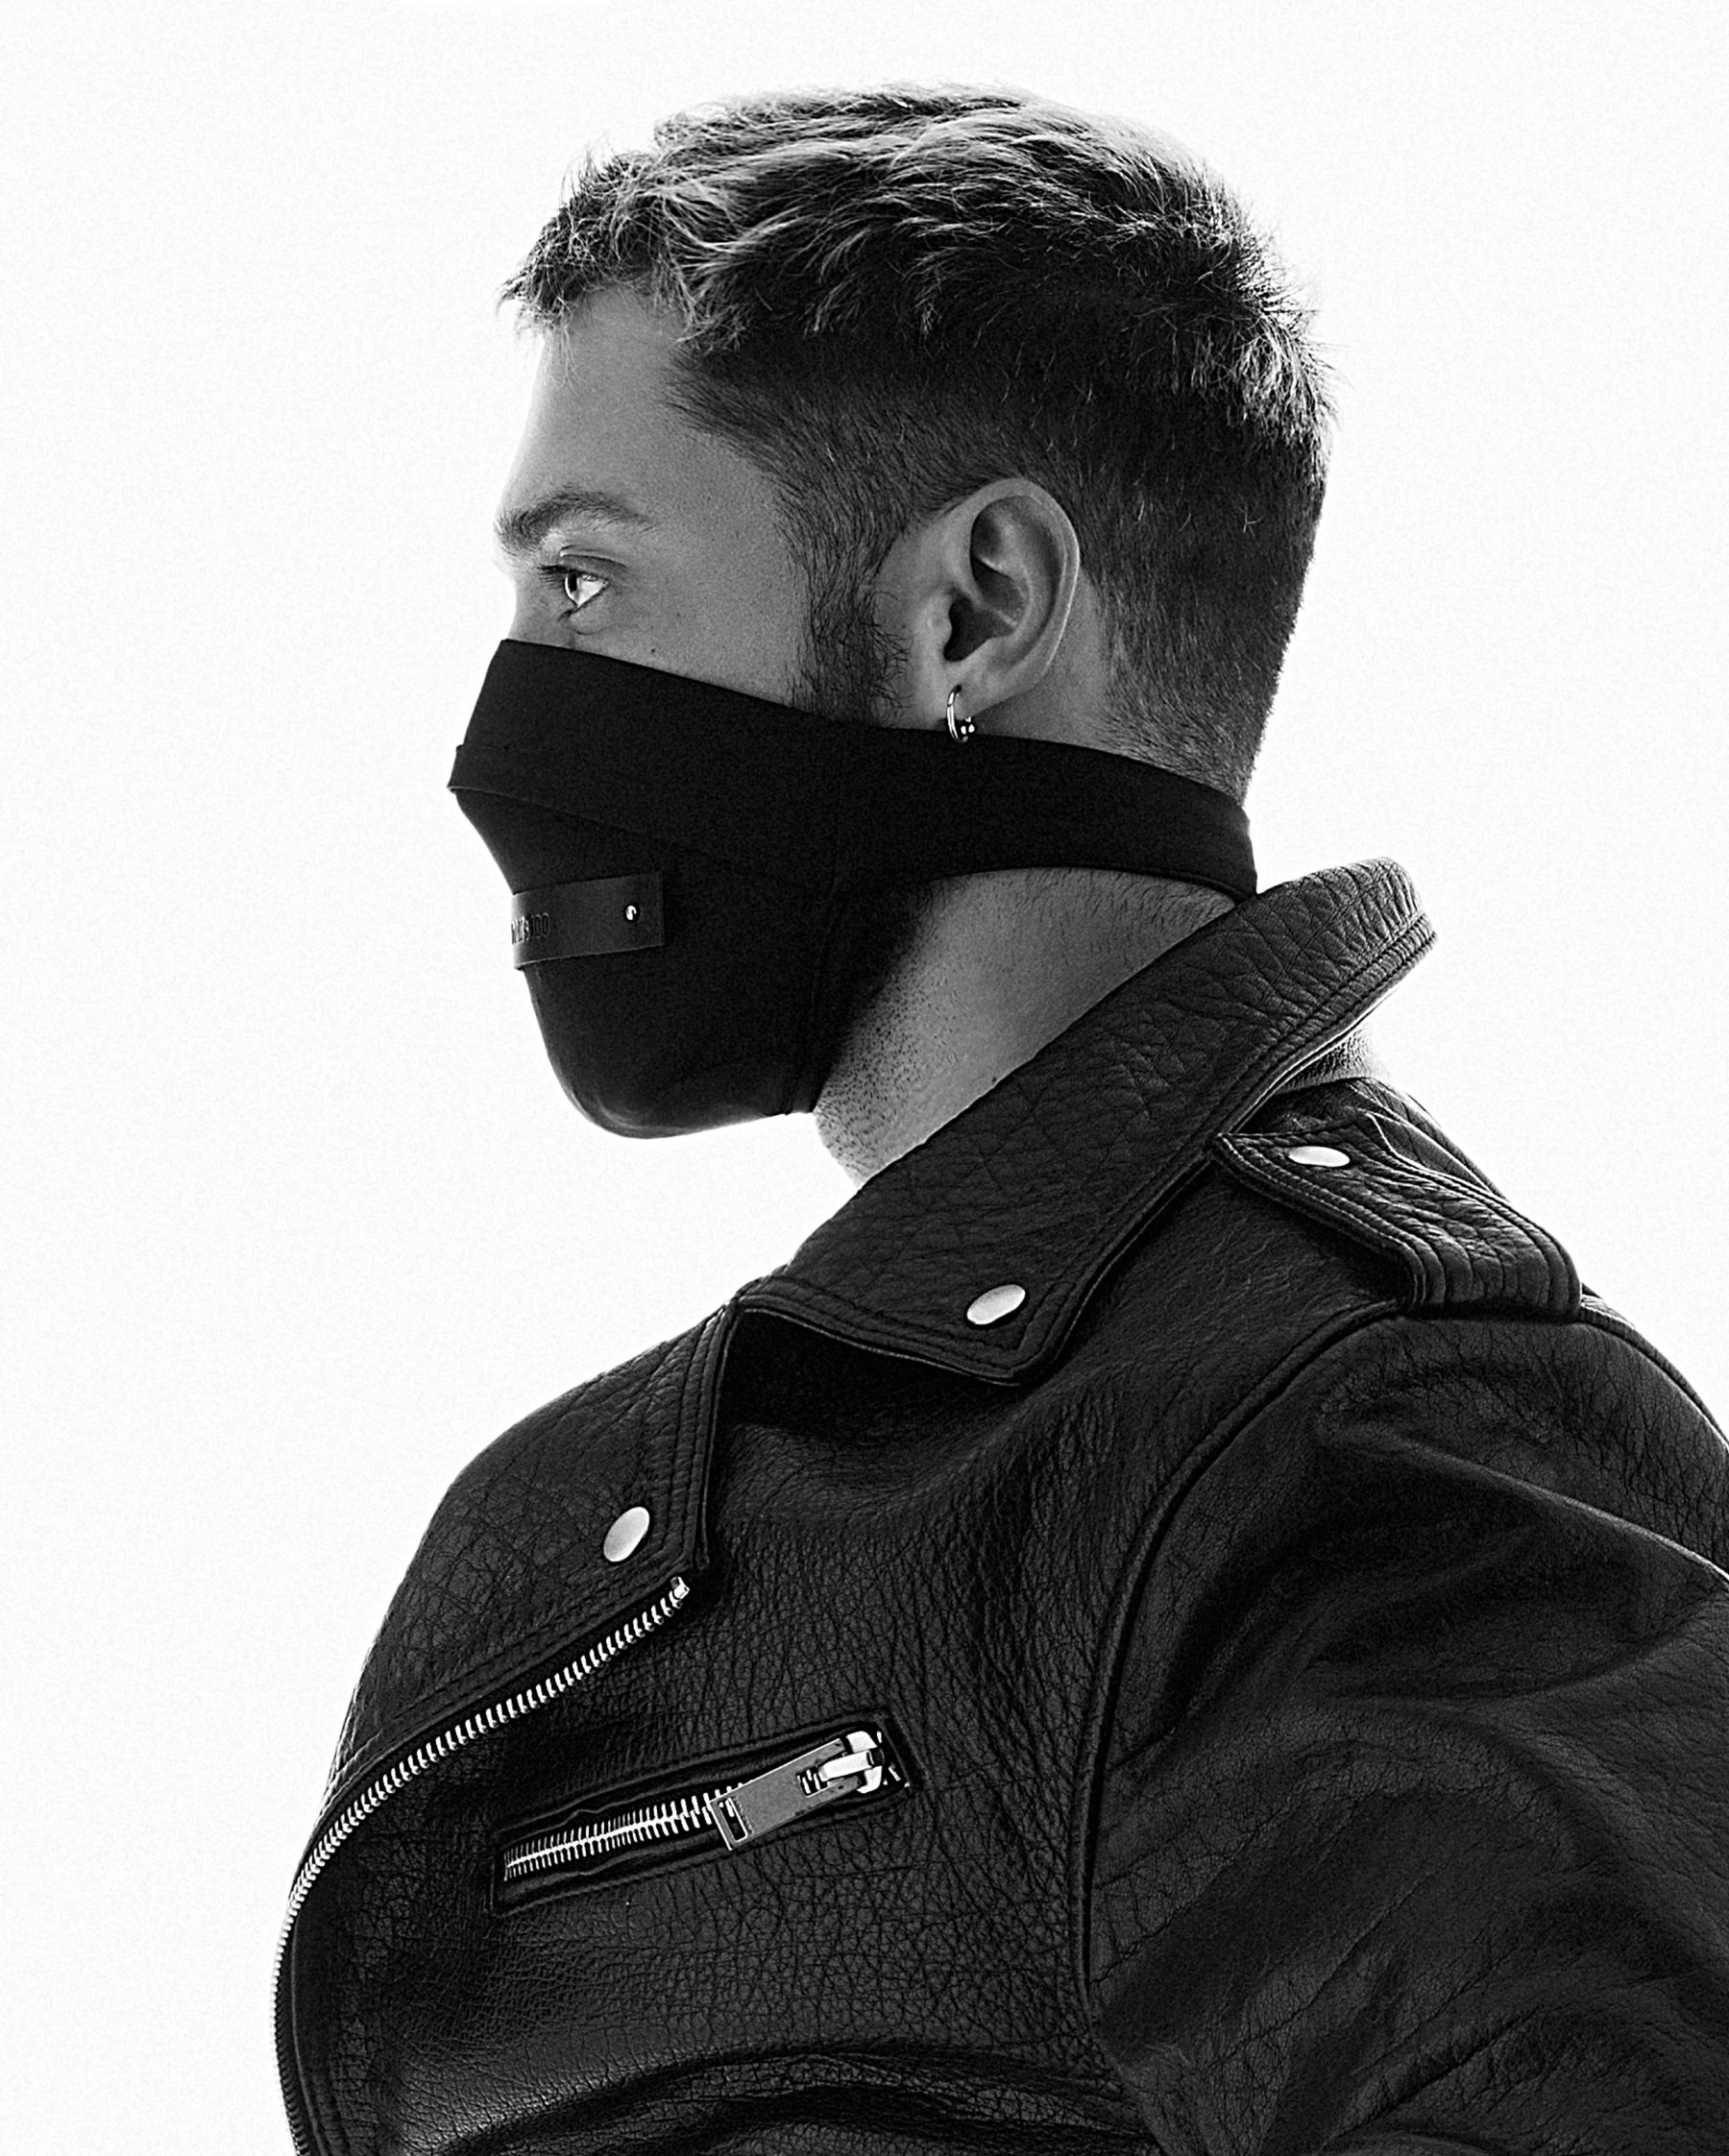 TOM OF FINLAND x FAKBYFAK  Fine Face Covering Mask & Gloves. Exclusive Centennial Edition Kit. Black Code: FBF-41103-01